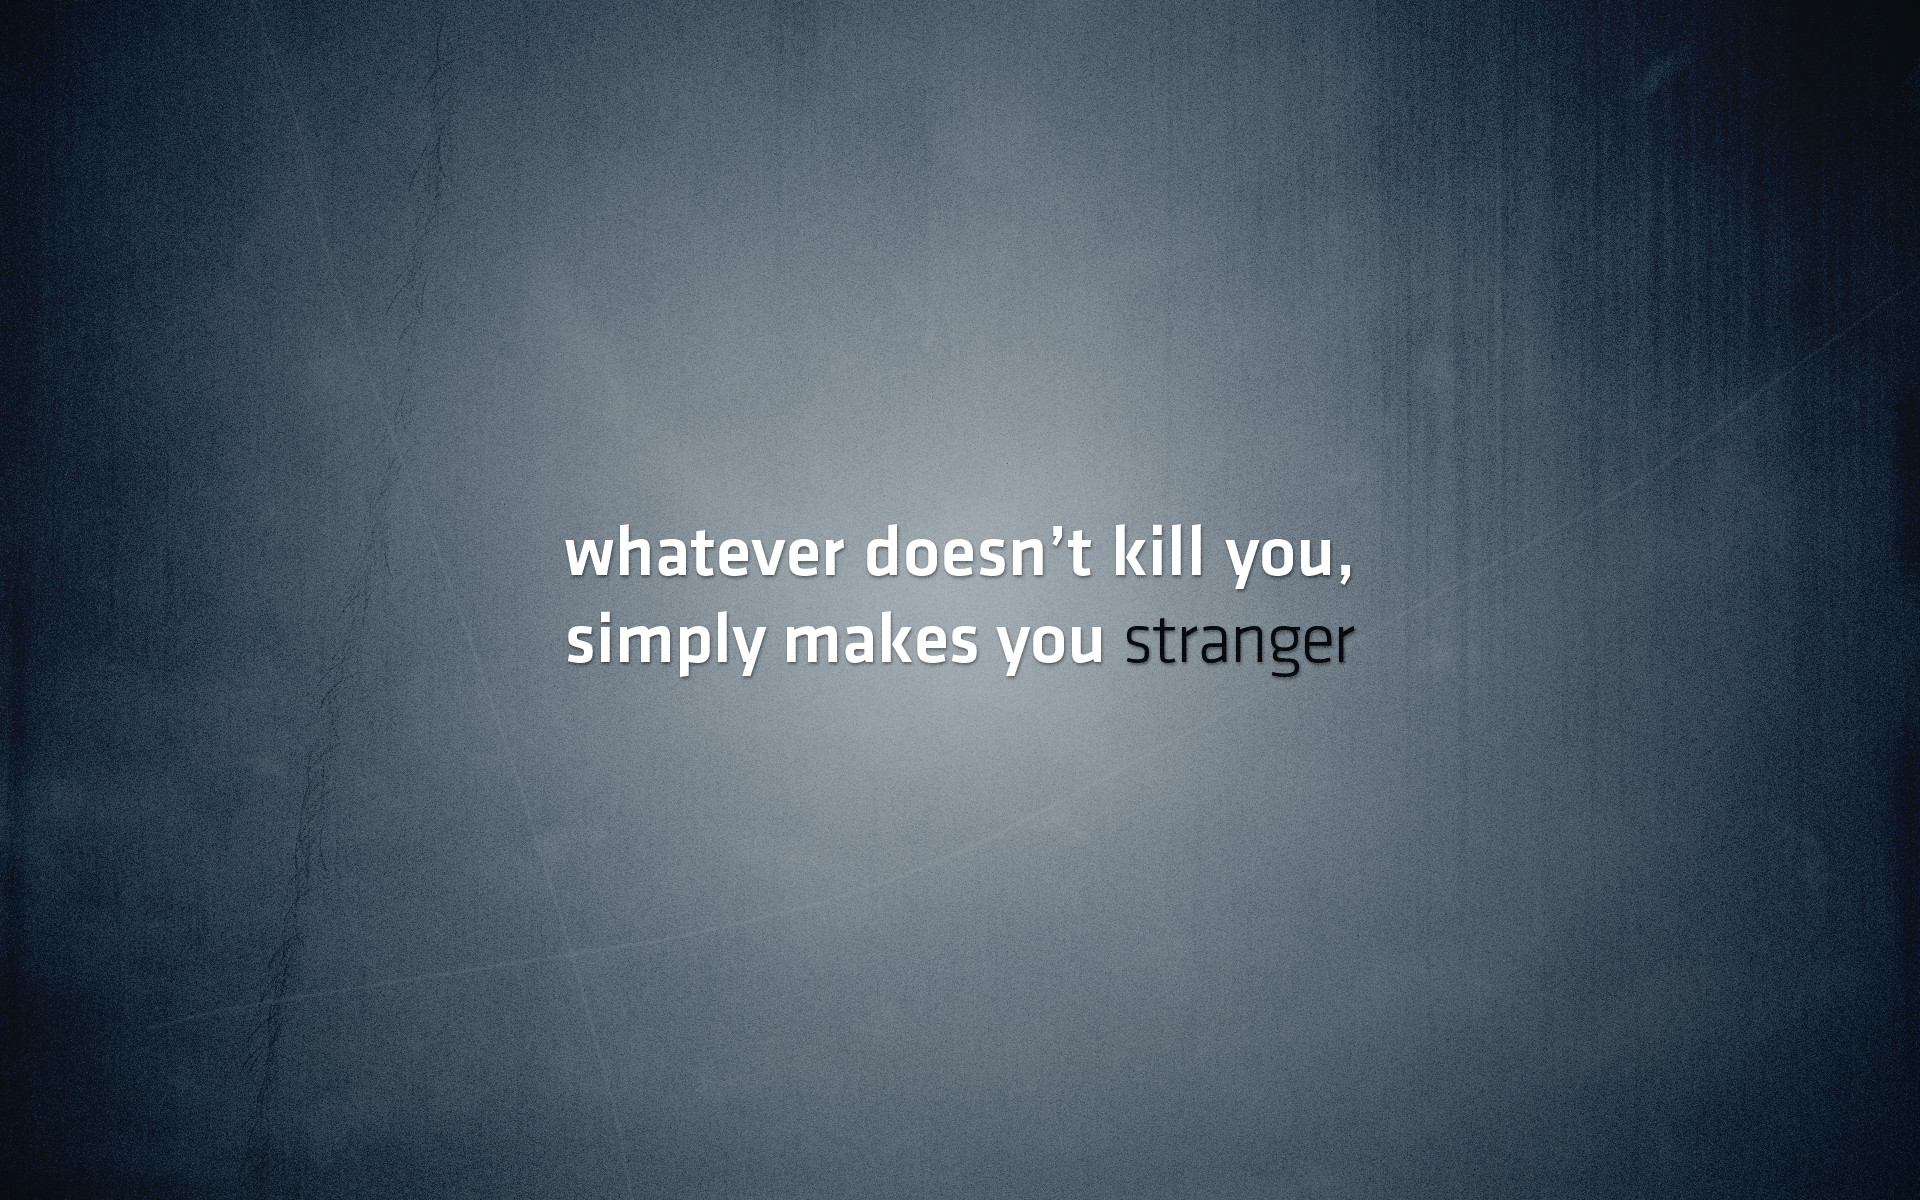 Batman Metallic Minimalistic Quotes Selective Coloring Simple Text The Joker  Typography What Doesnt Kill You